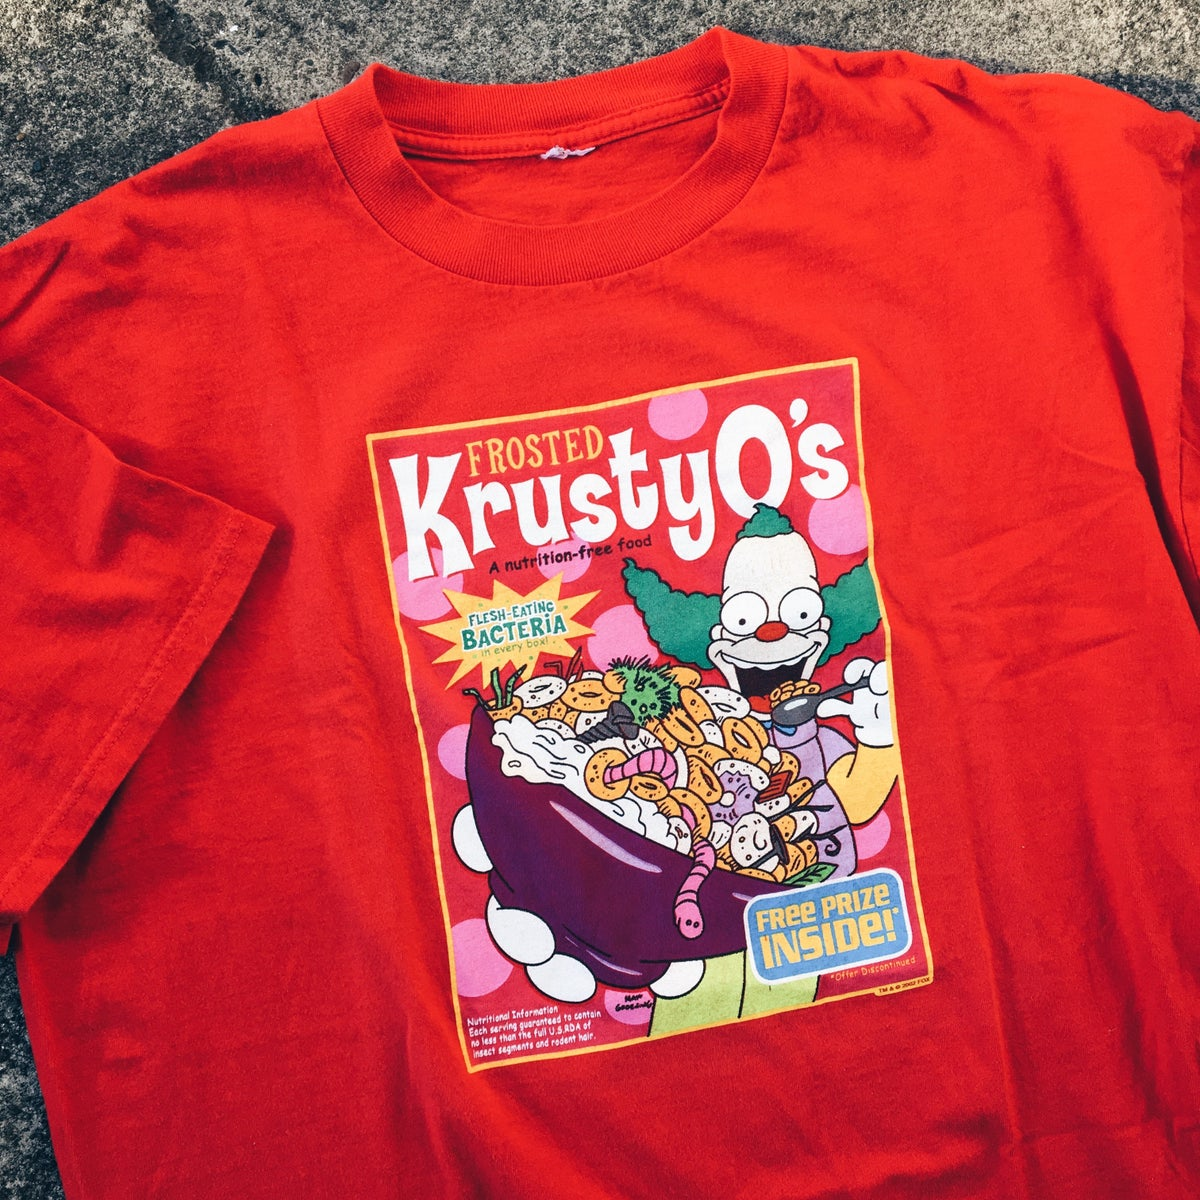 Image of Original 2002 Simpson's KrustyO's Tee.